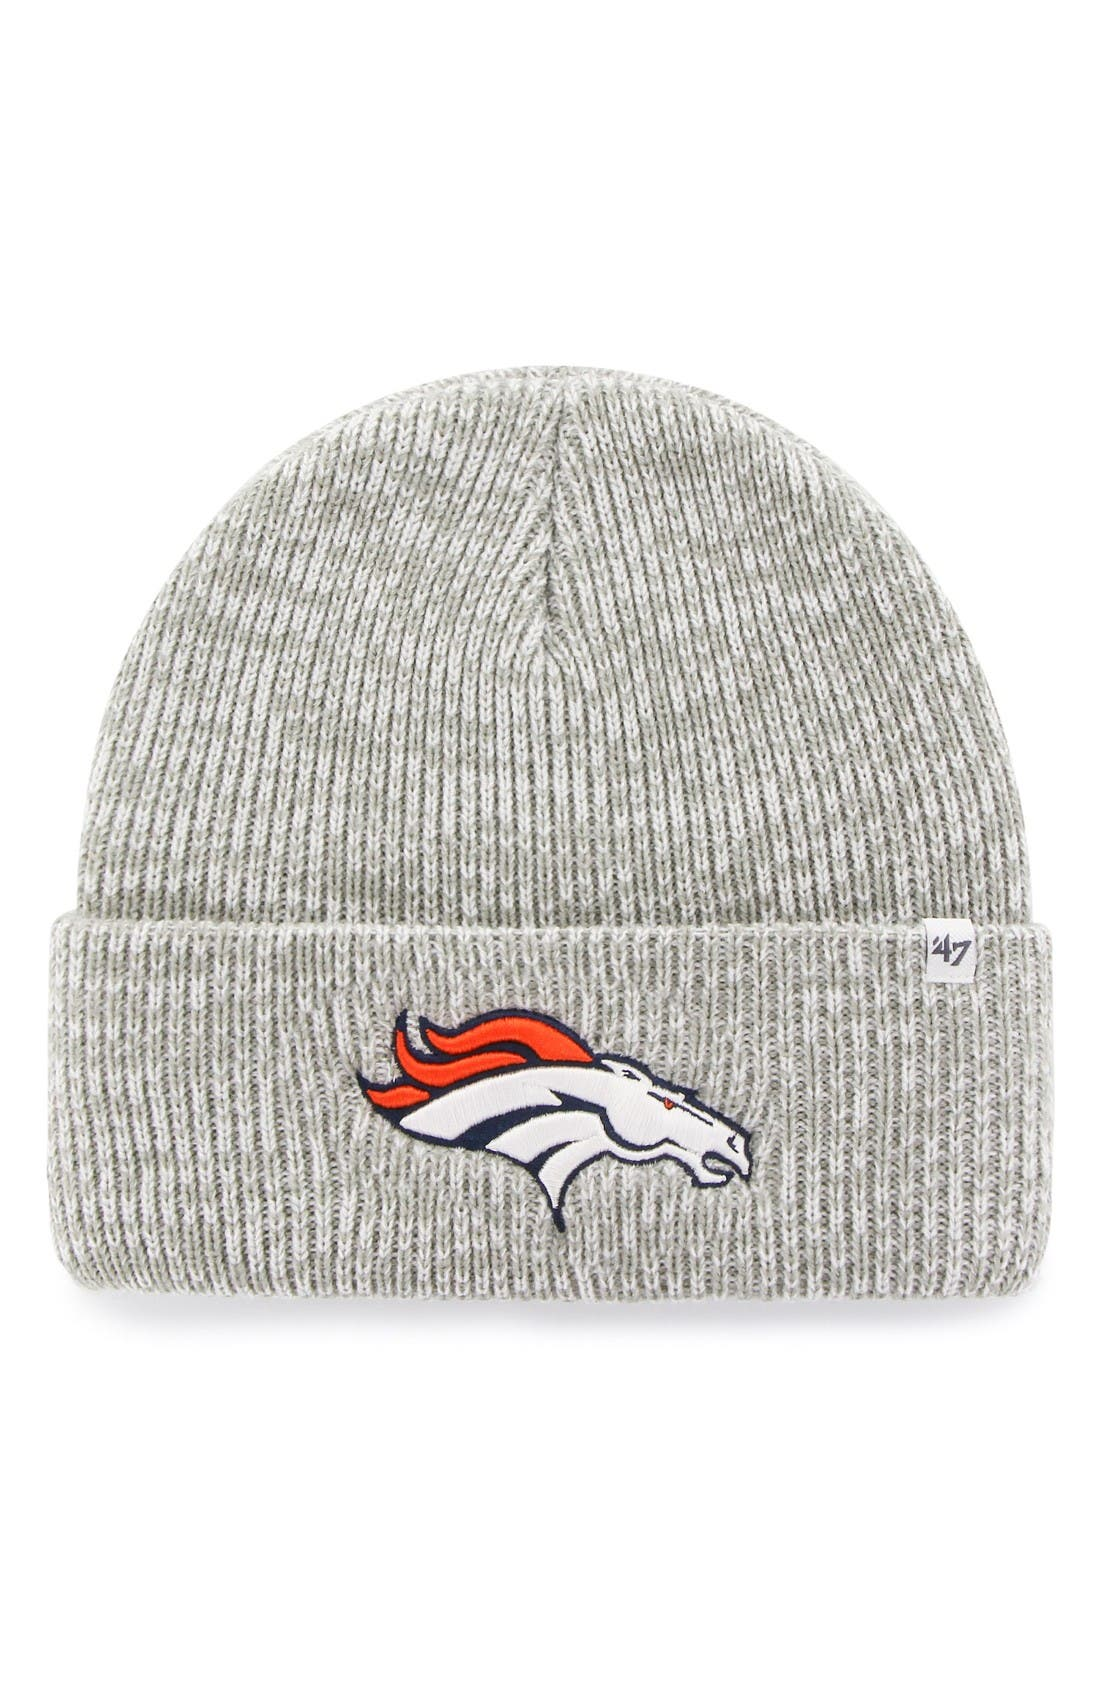 '47 NFL Brainfreeze Knit Beanie